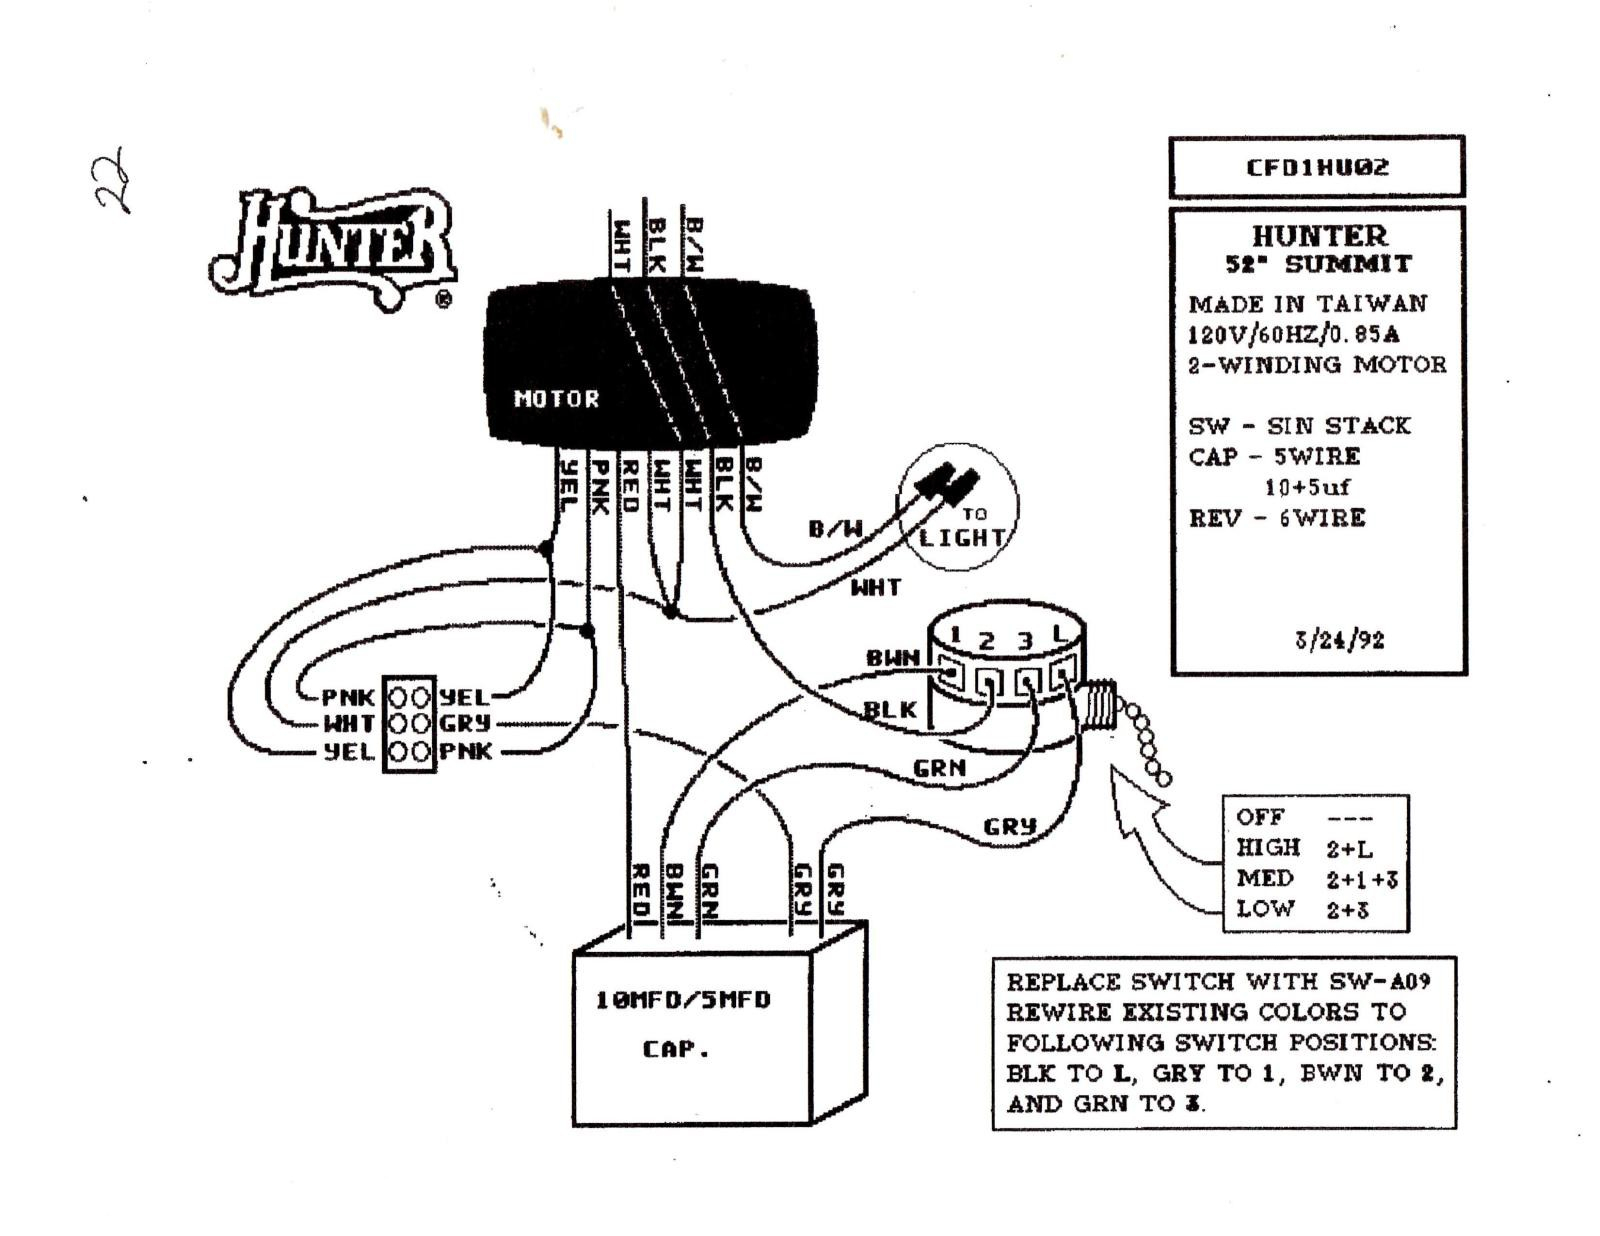 Harbor Breexe Wiring Diagram Fan And Light | Manual E-Books - Harbor Breeze Fan Wiring Diagram